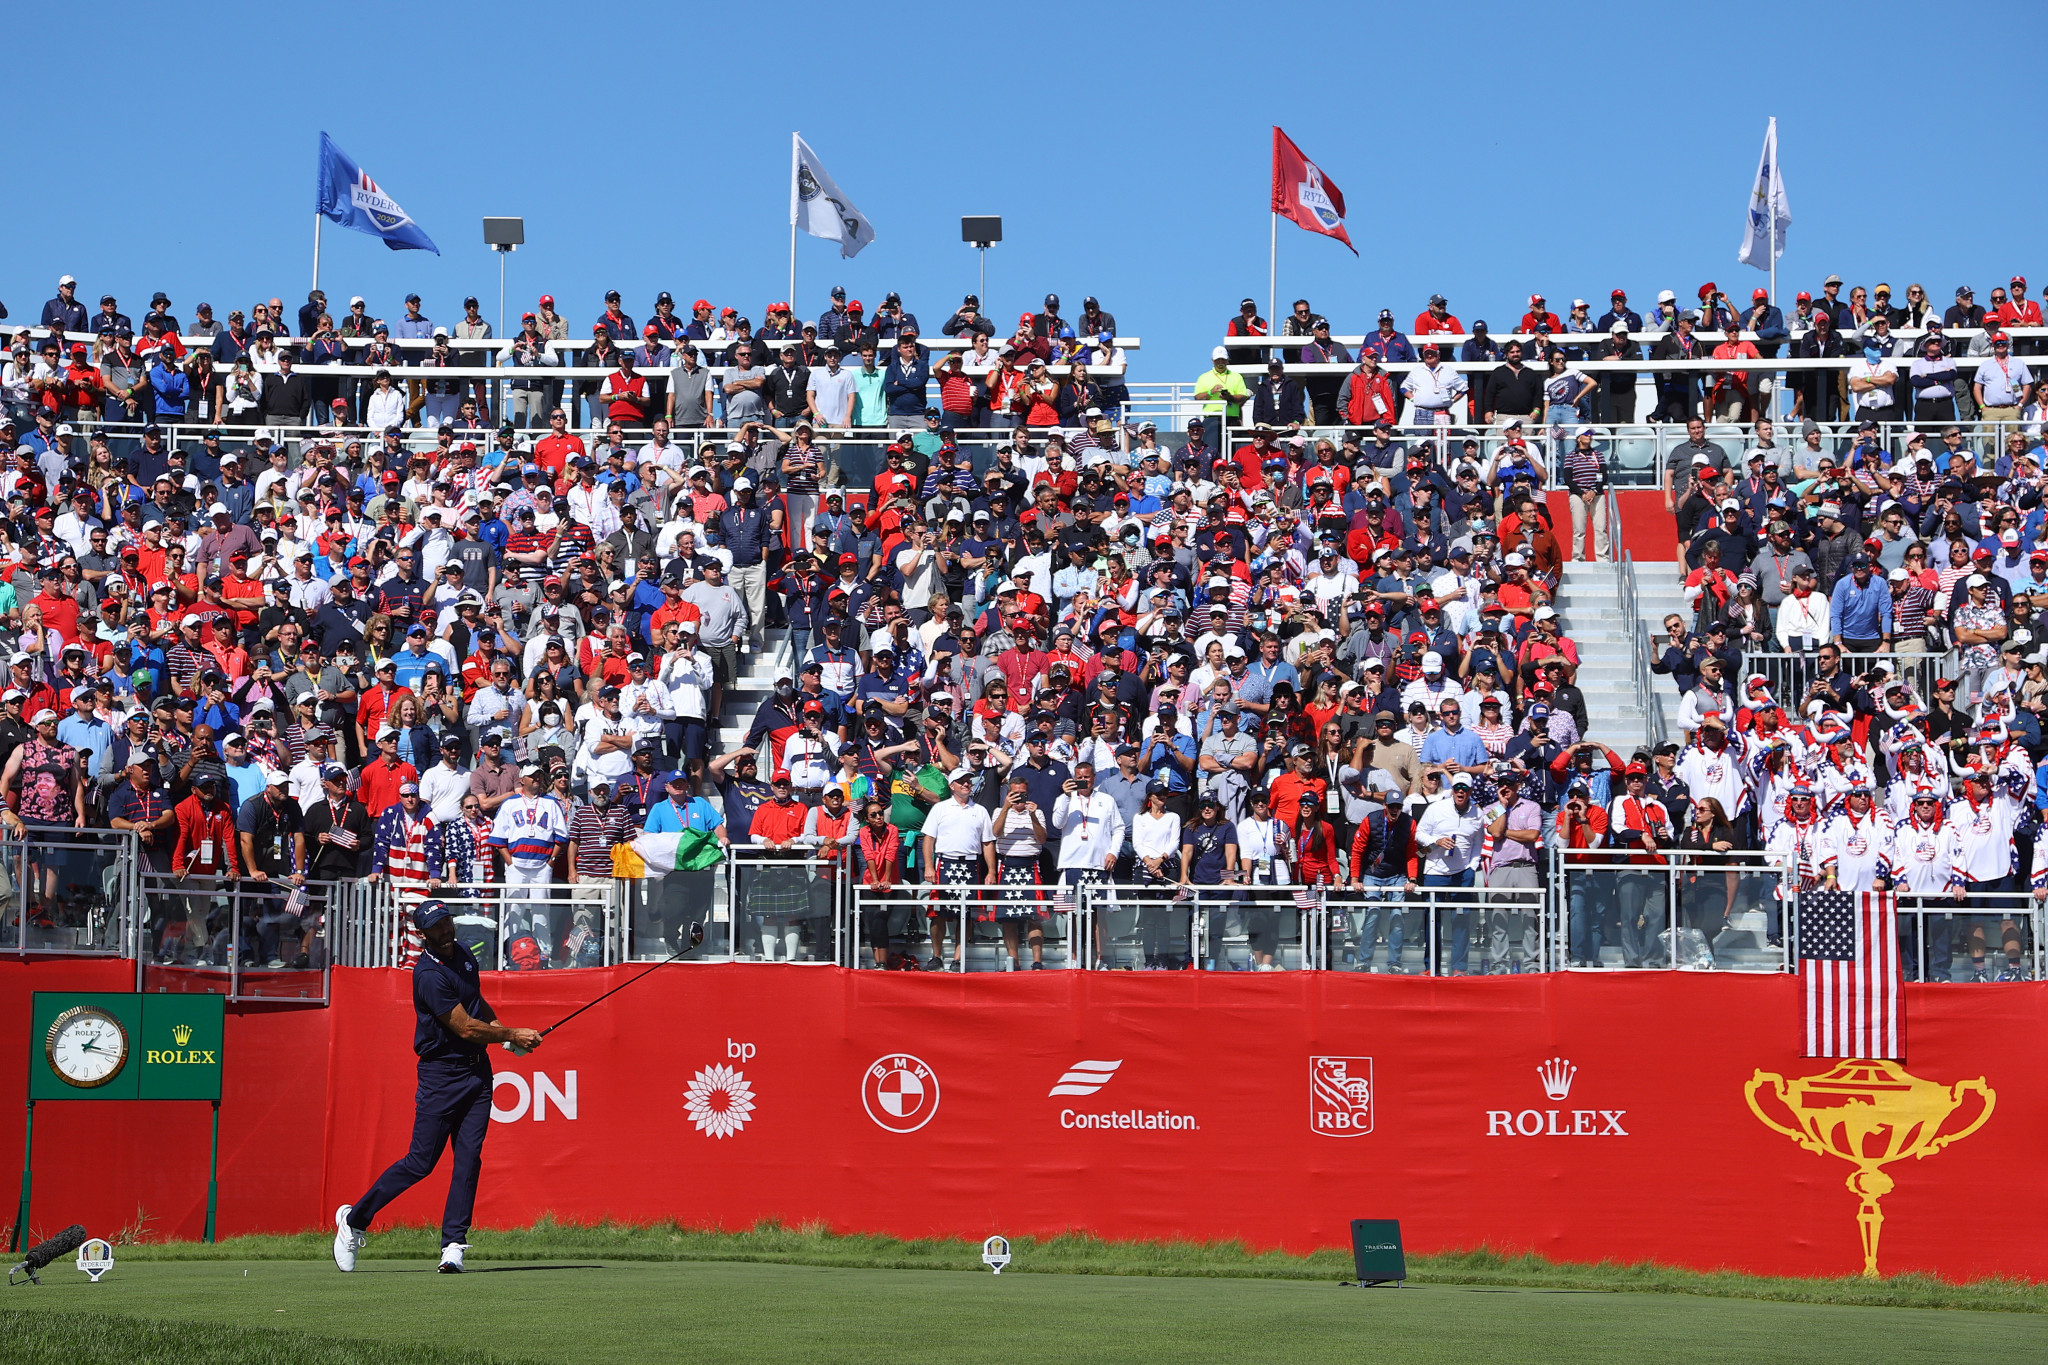 US open up six point lead over Europe heading into final day of Ryder Cup